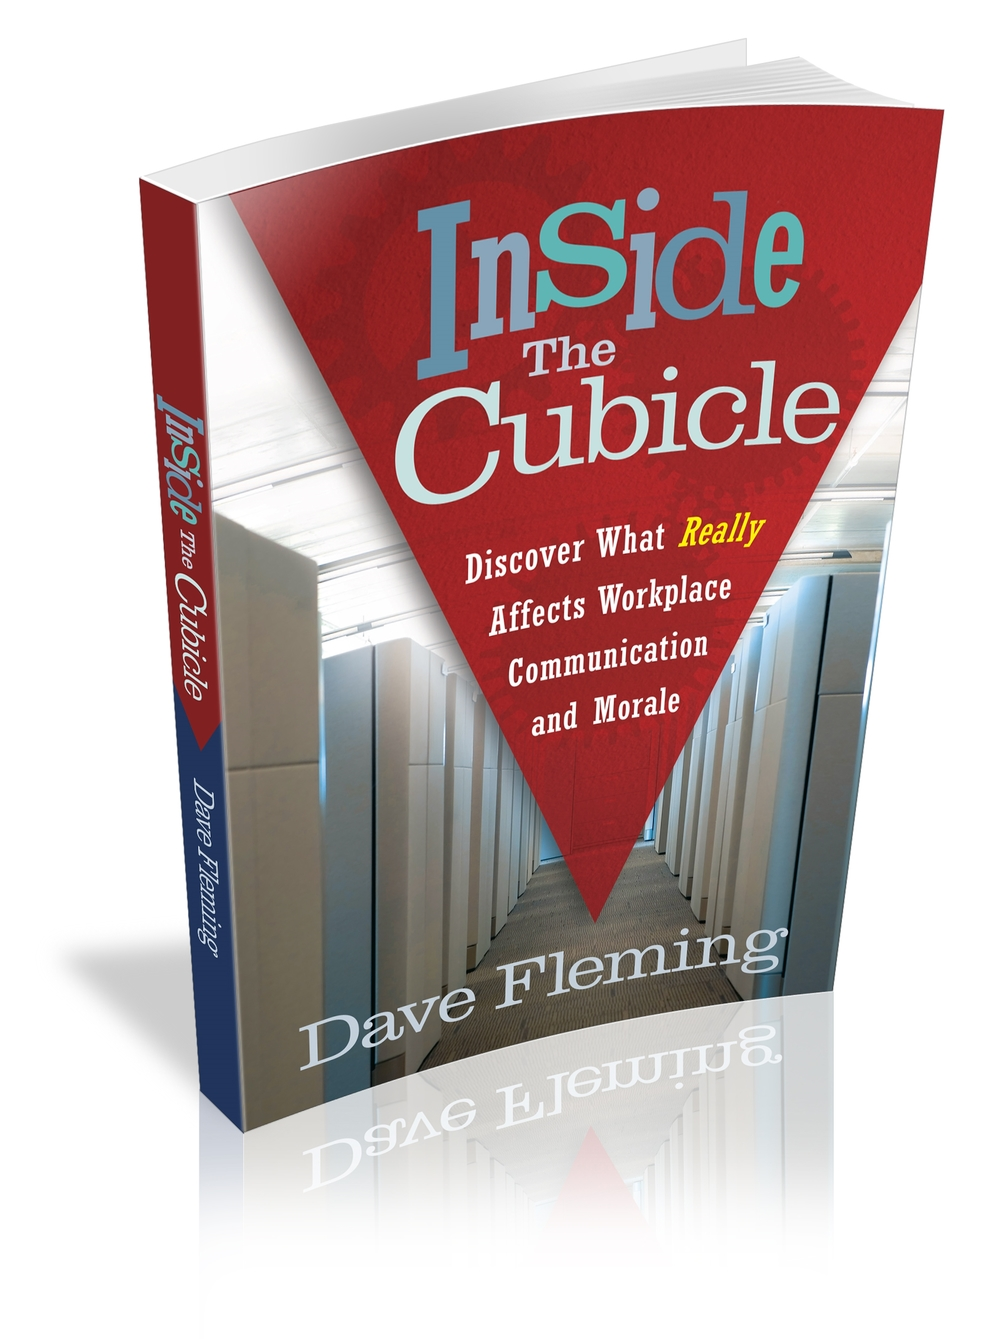 Inside the Cubicle from author Dave Fleming